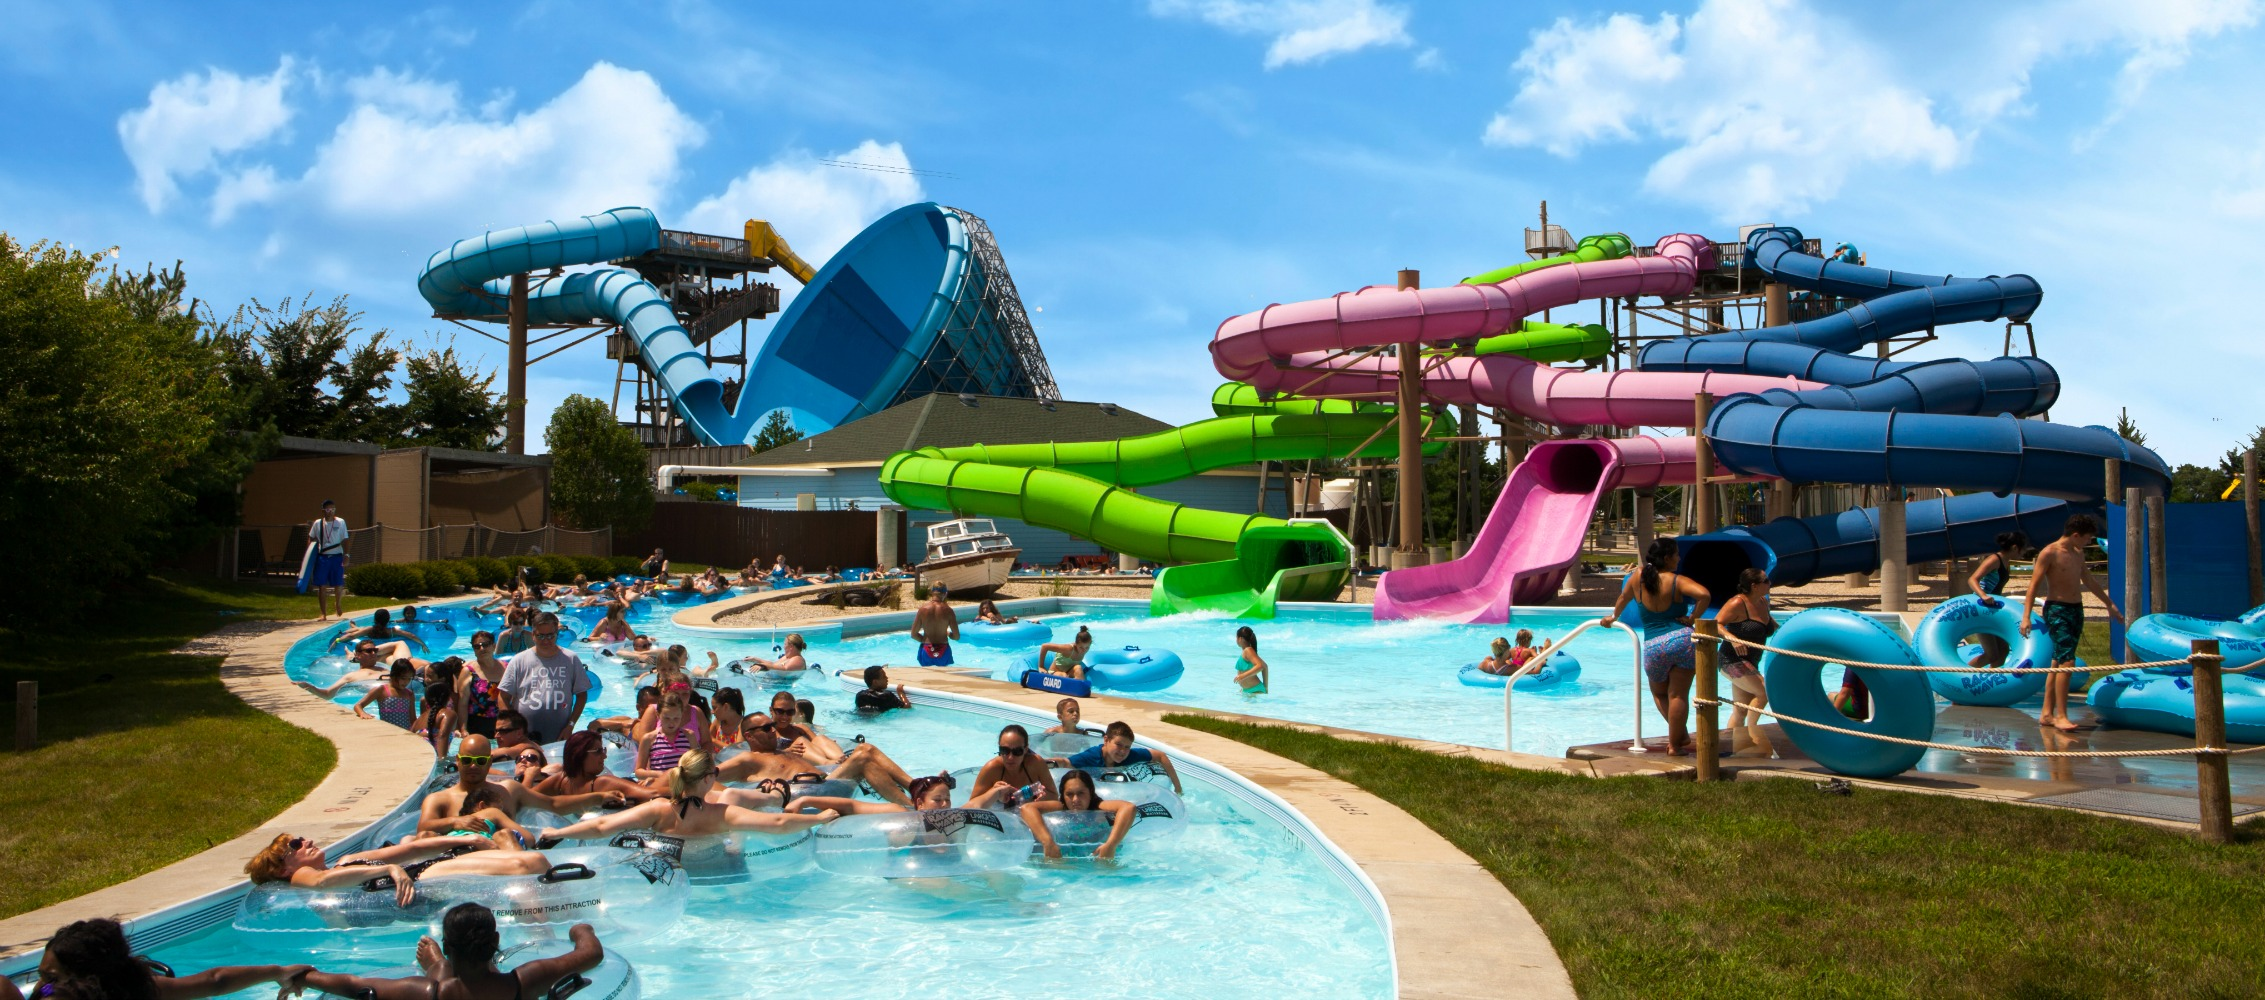 Water Park Dos And Donts When Visiting With Teens And -9774